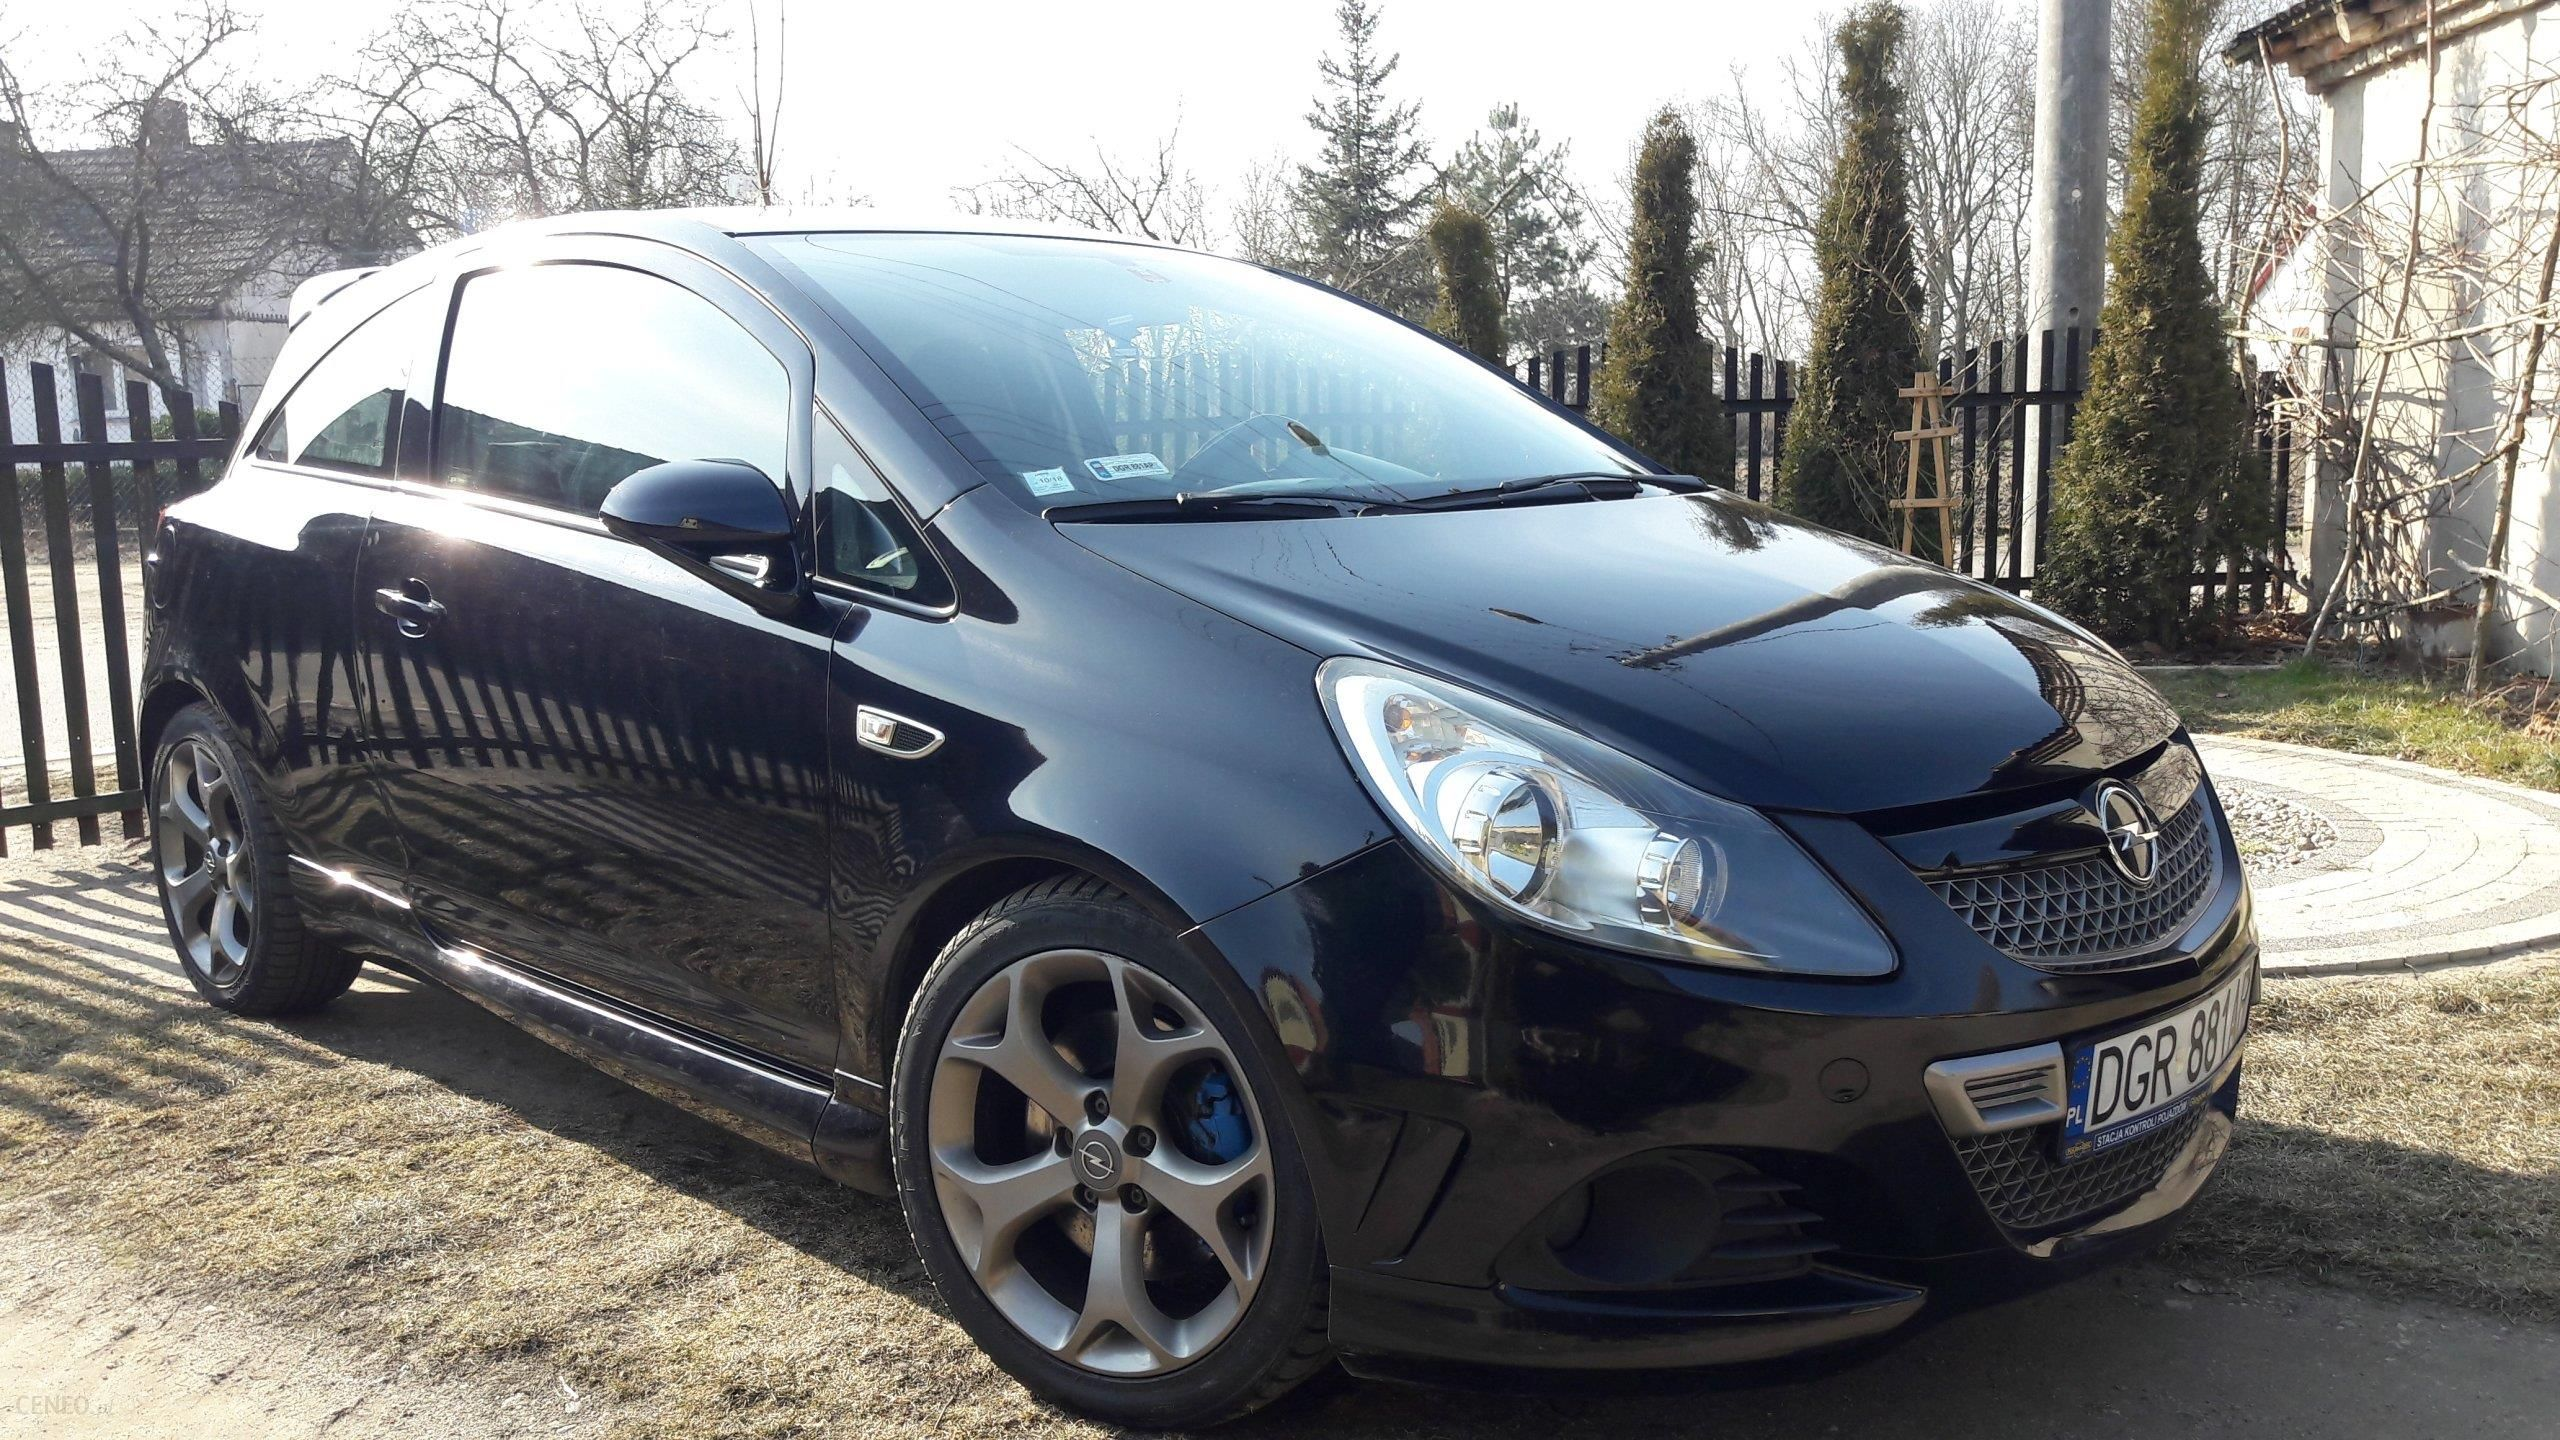 opel corsa d 2008 193km czarny opinie i ceny na. Black Bedroom Furniture Sets. Home Design Ideas